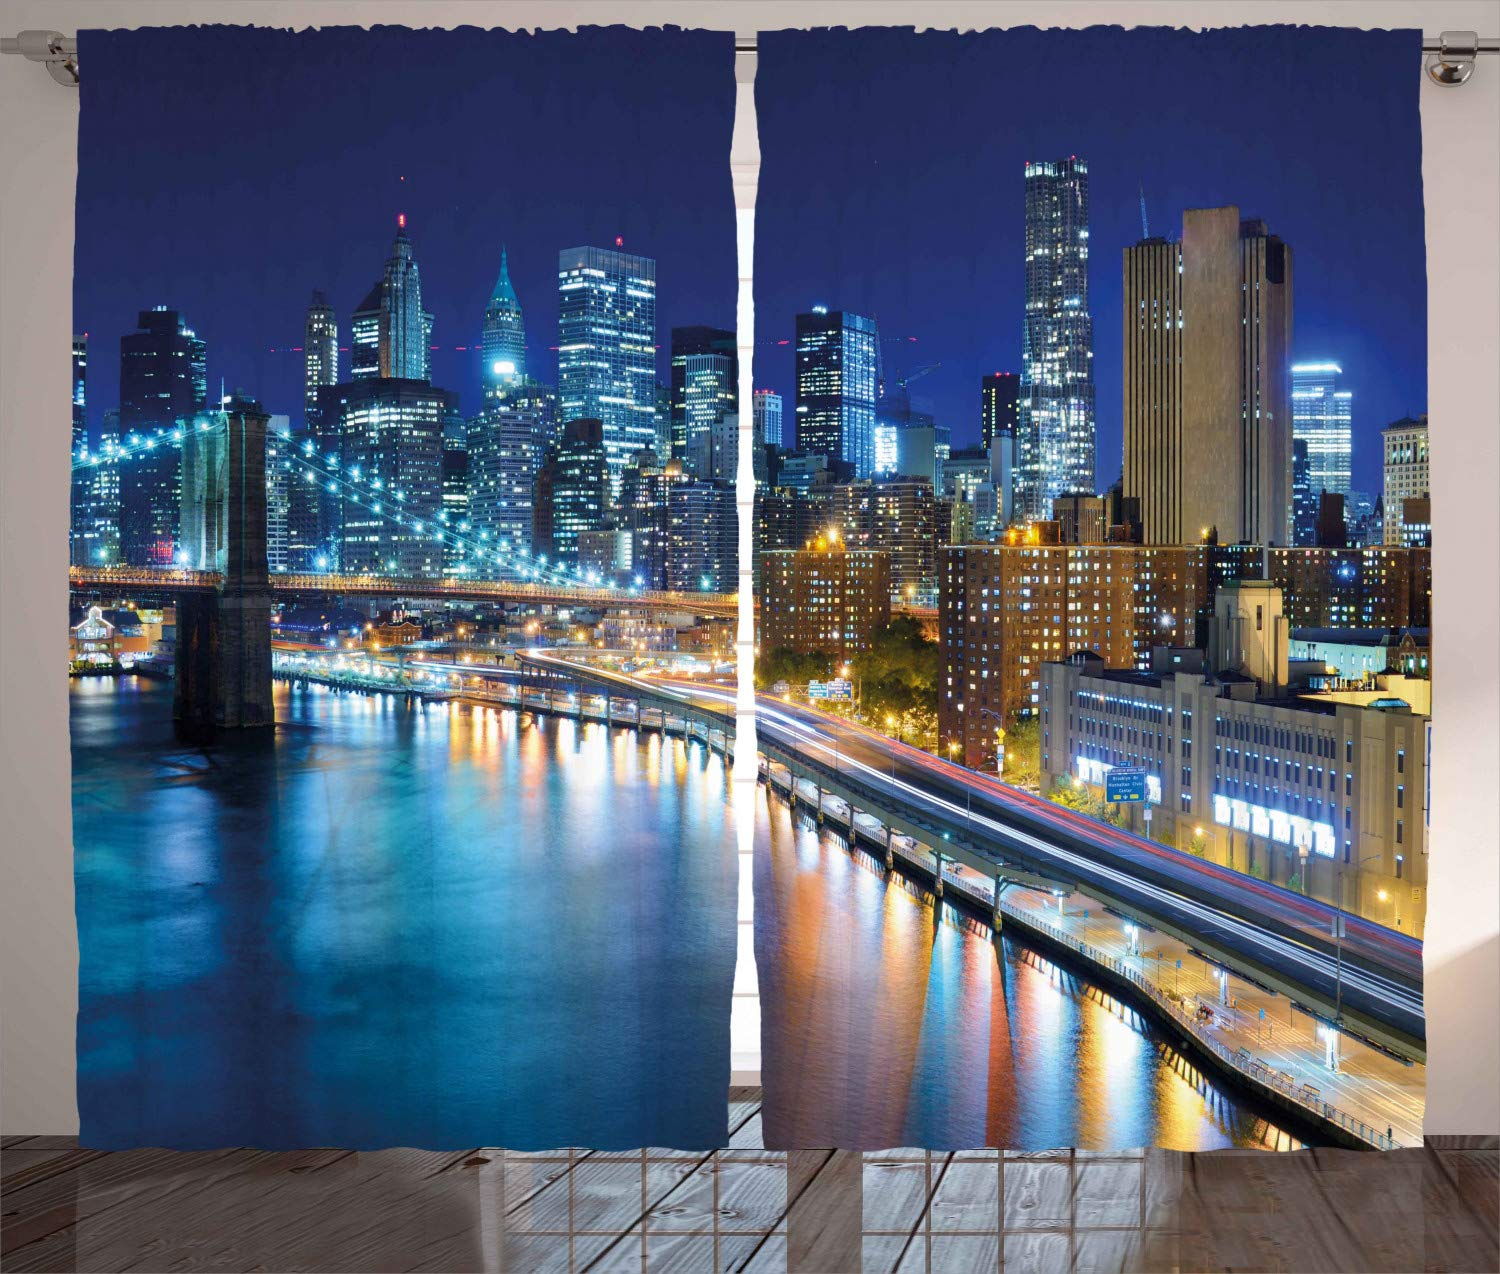 Ambesonne Landscape Curtains, View of New York City Manhattan Bay Harbour at Night with Lights and Skyscrapers, Living Room Bedroom Window Drapes 2 Panel Set, 108 W X 96 L Inches, Multicolor